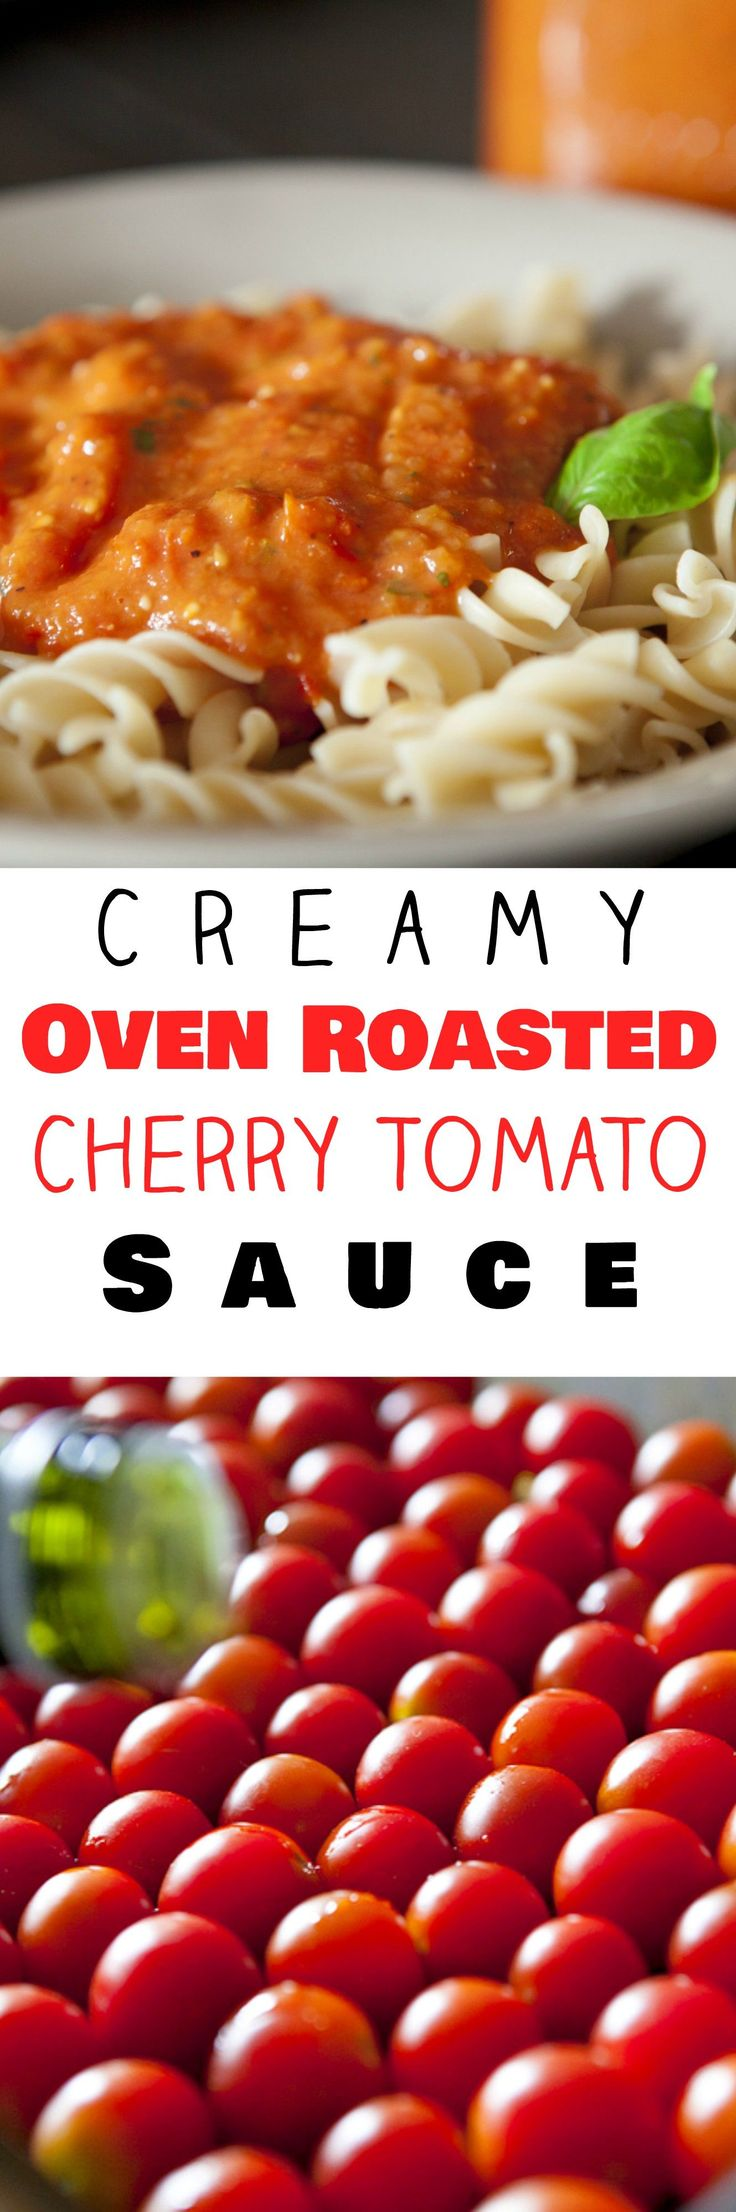 Oven Roasted Creamy Cherry Tomato Sauce is a sweet and creamy tomato sauce recipe using cherry tomatoes.